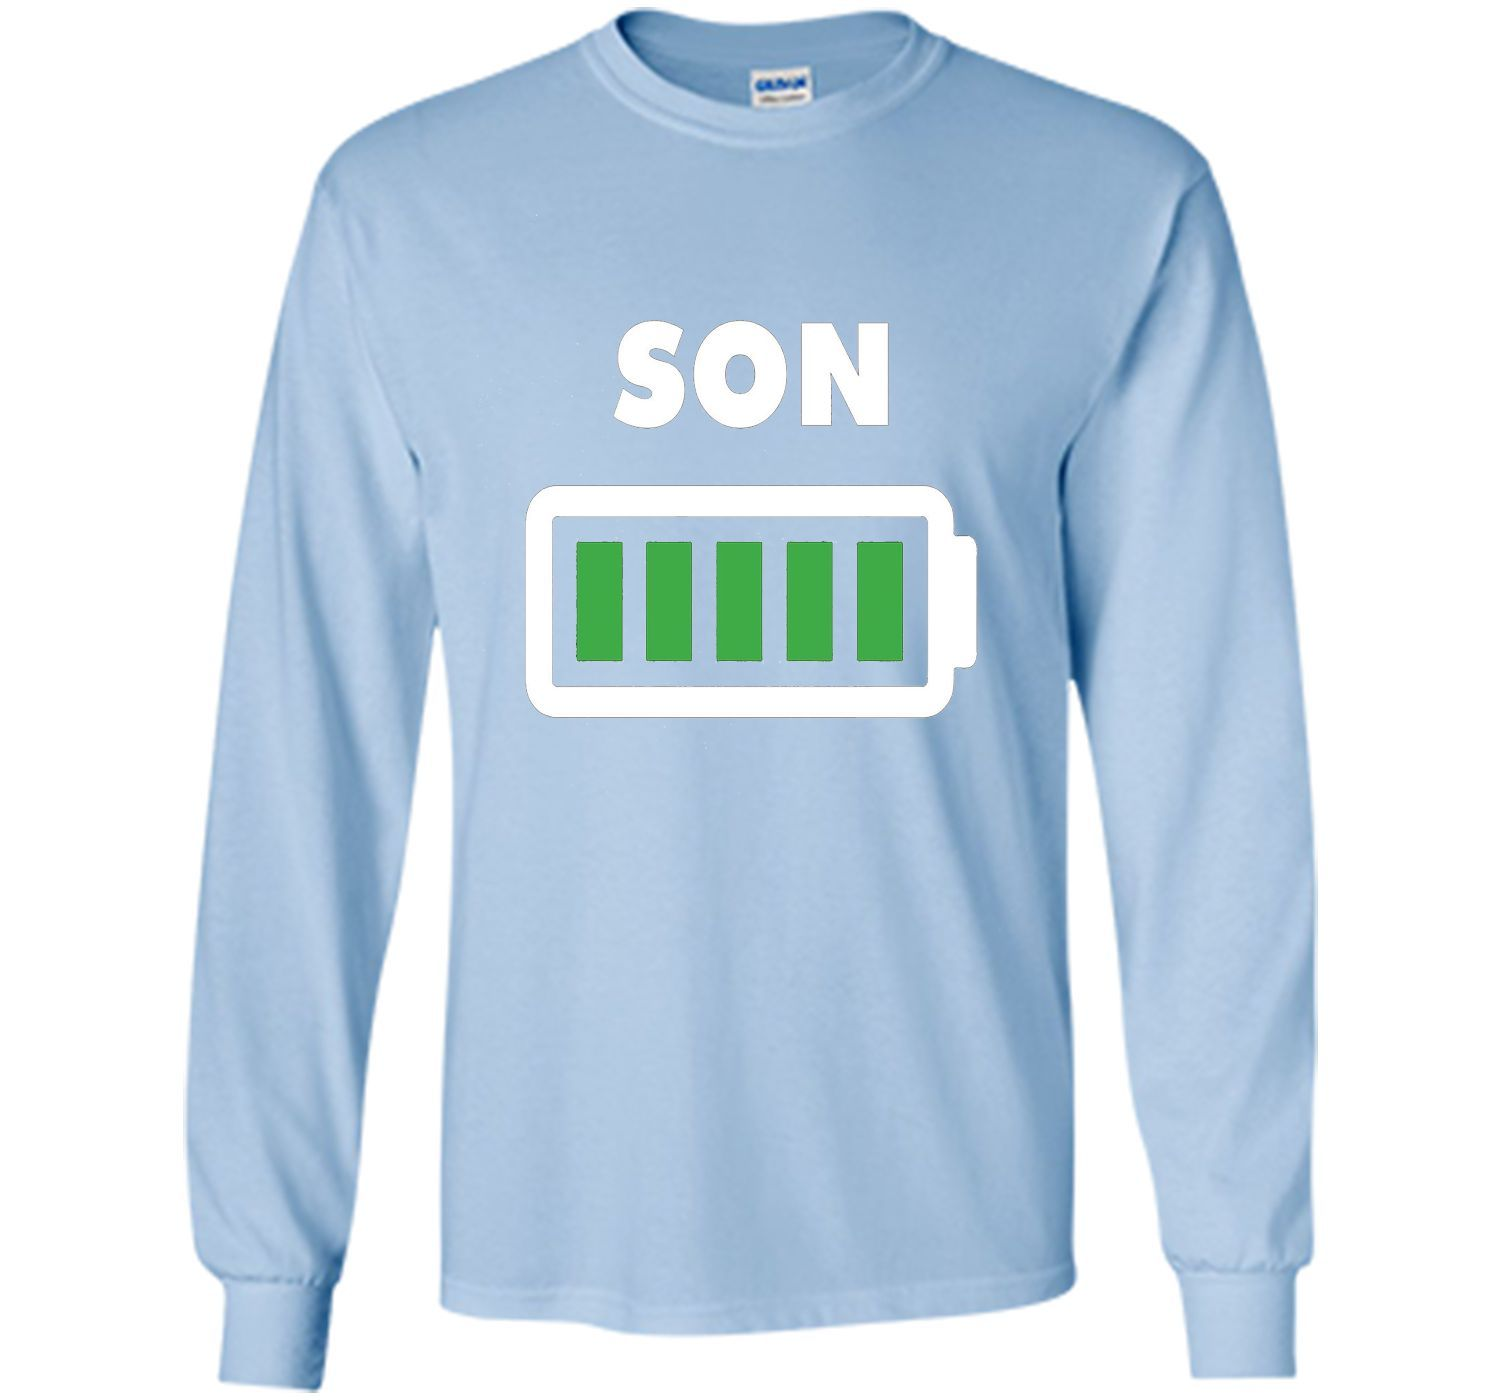 Son Full Battery shirt- Mom and Son matching outfits 2